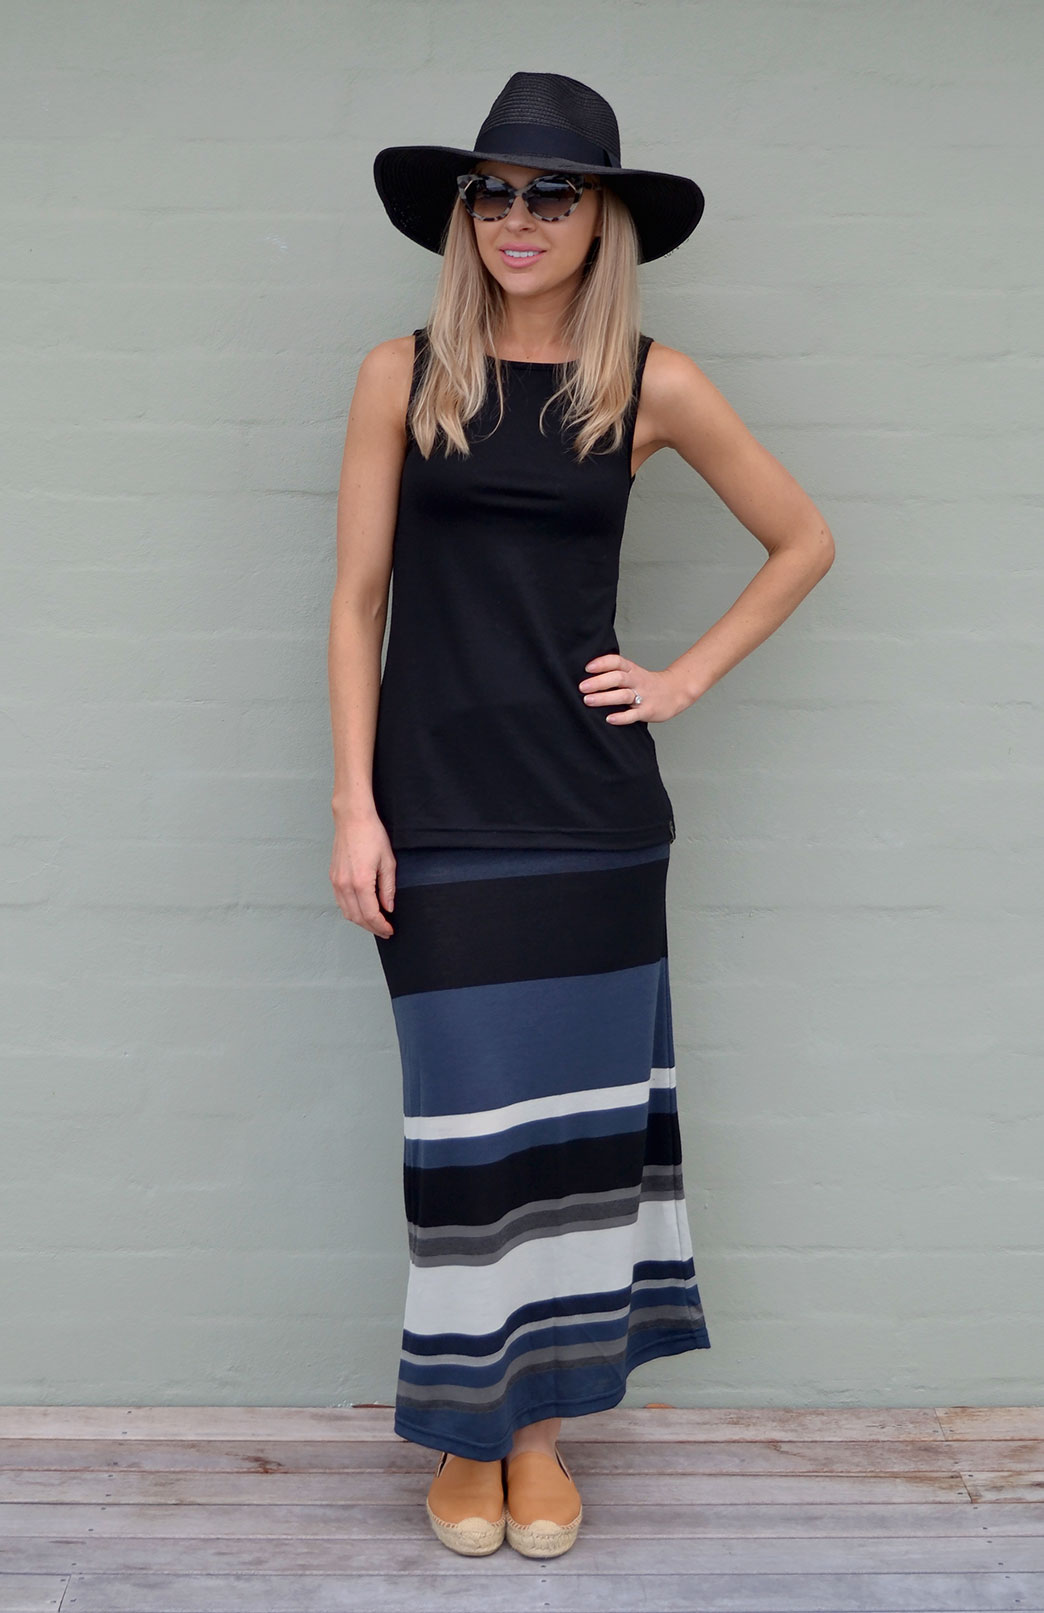 Maxi Skirt - Multi Stripe - Women's Striped Wool Summer Maxi Skirt - Smitten Merino Tasmania Australia